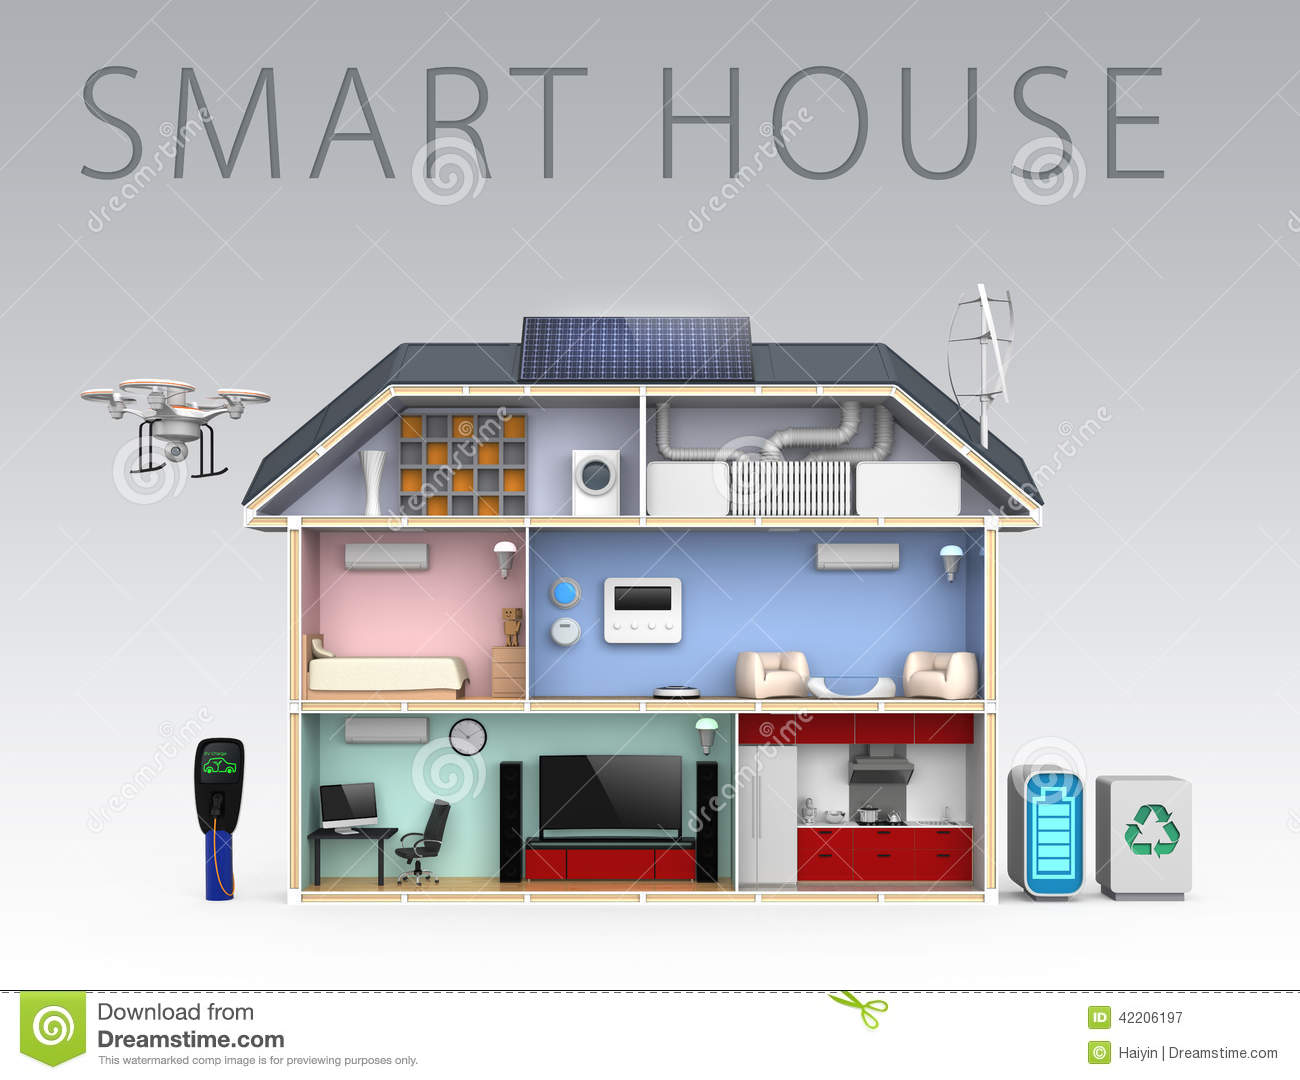 Smart house with energy efficient appliances with text Energy efficient kitchen design